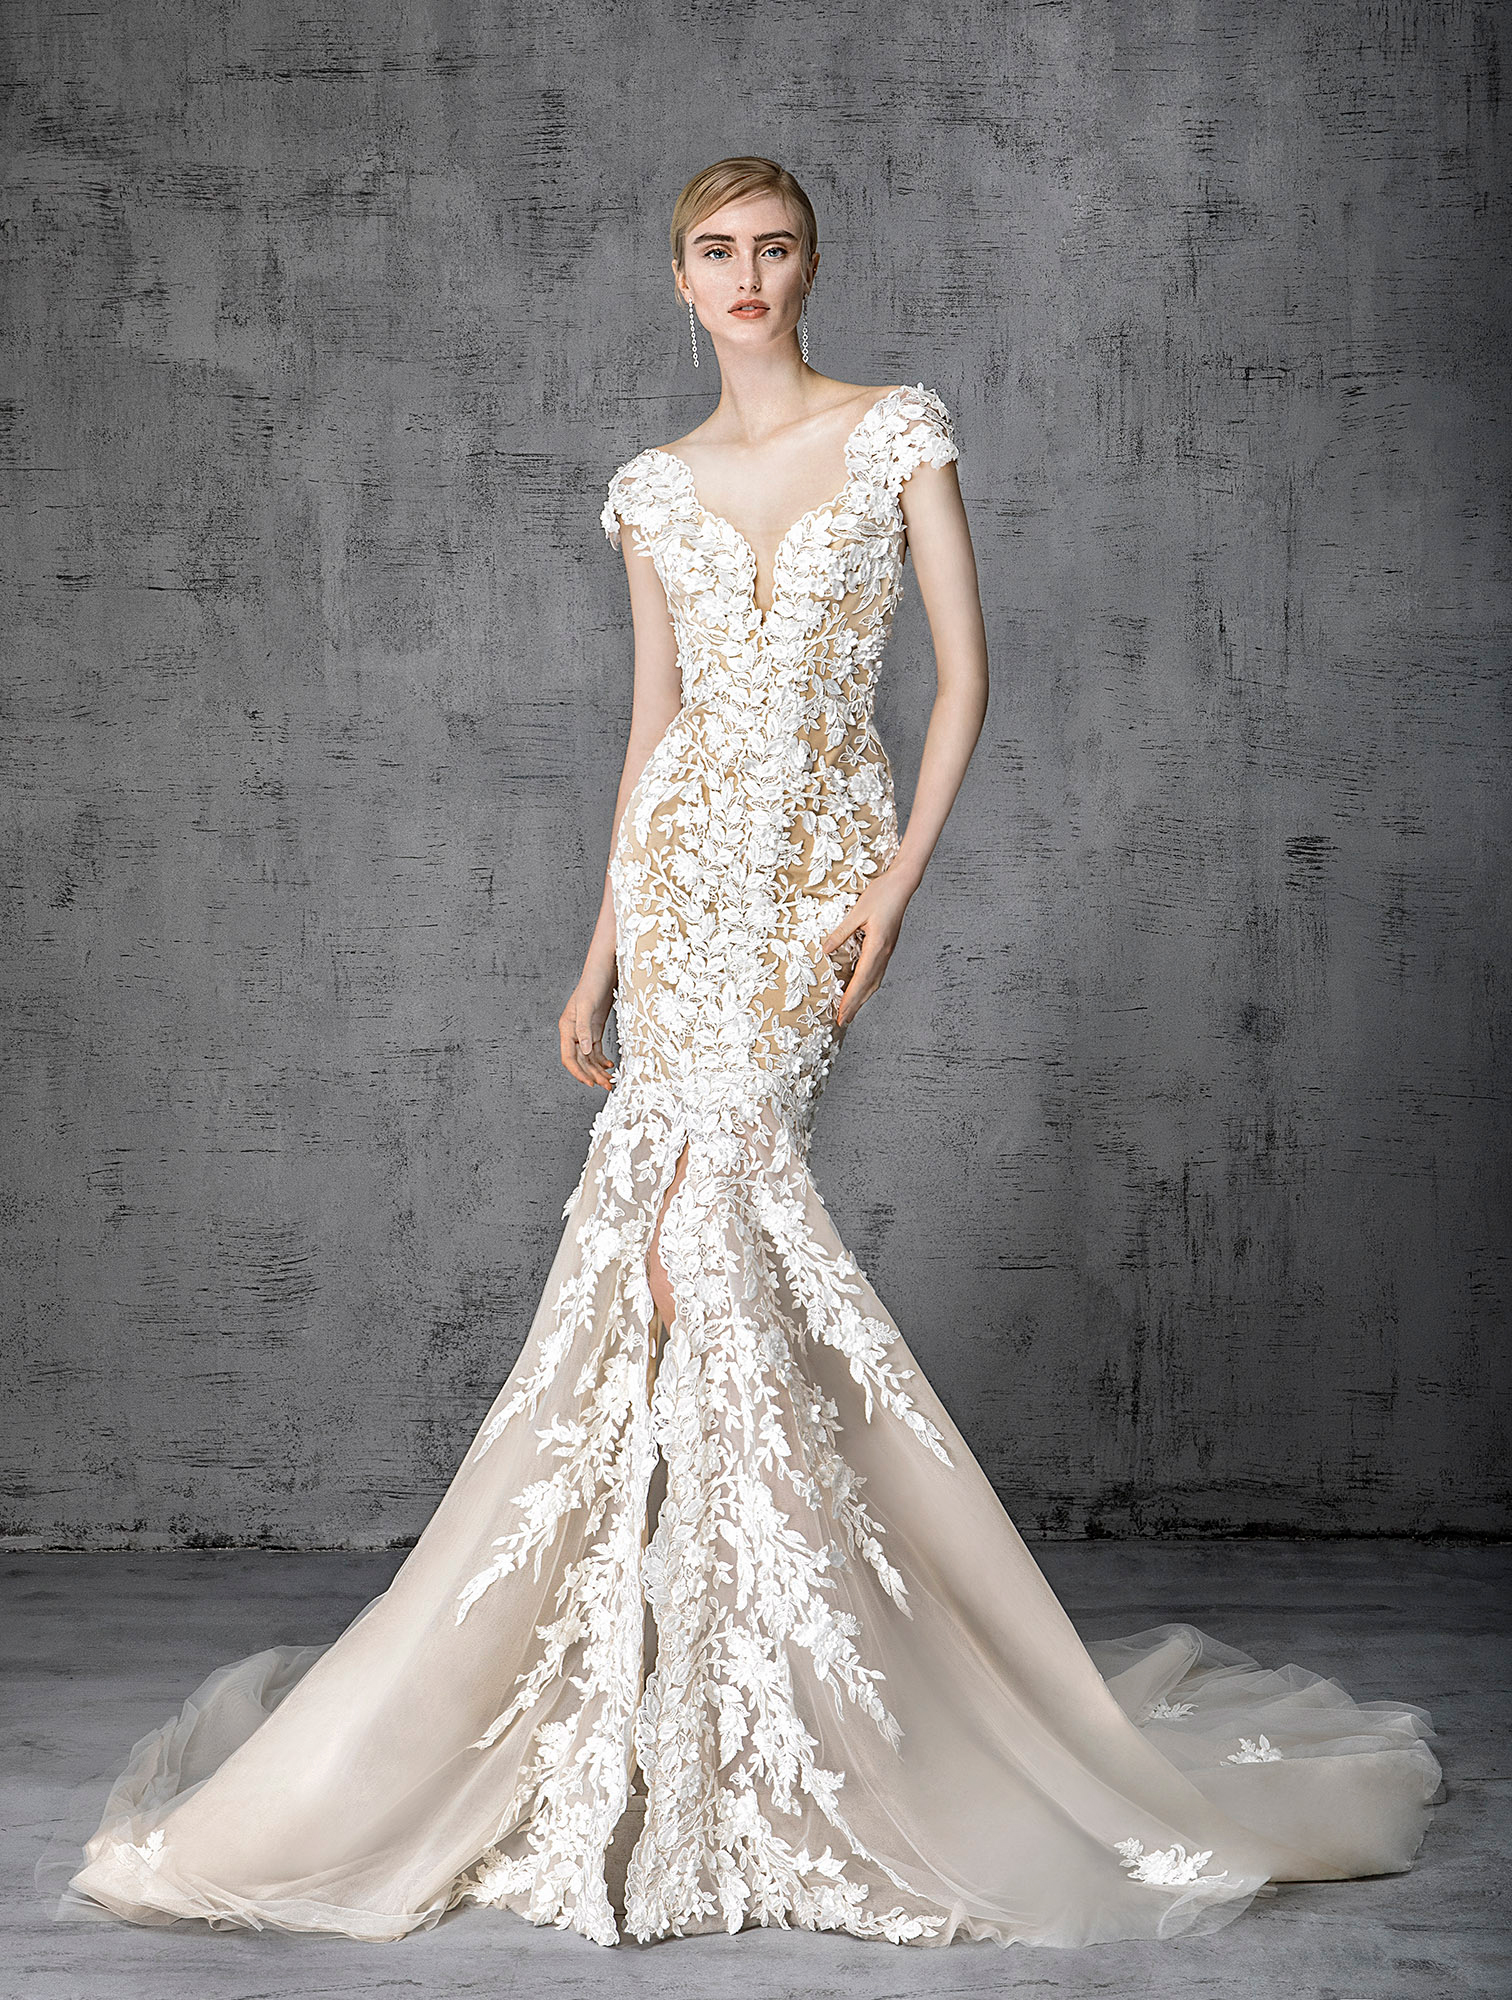 victoria kyriakides wedding dress spring 2019 champagne with white floral appliques